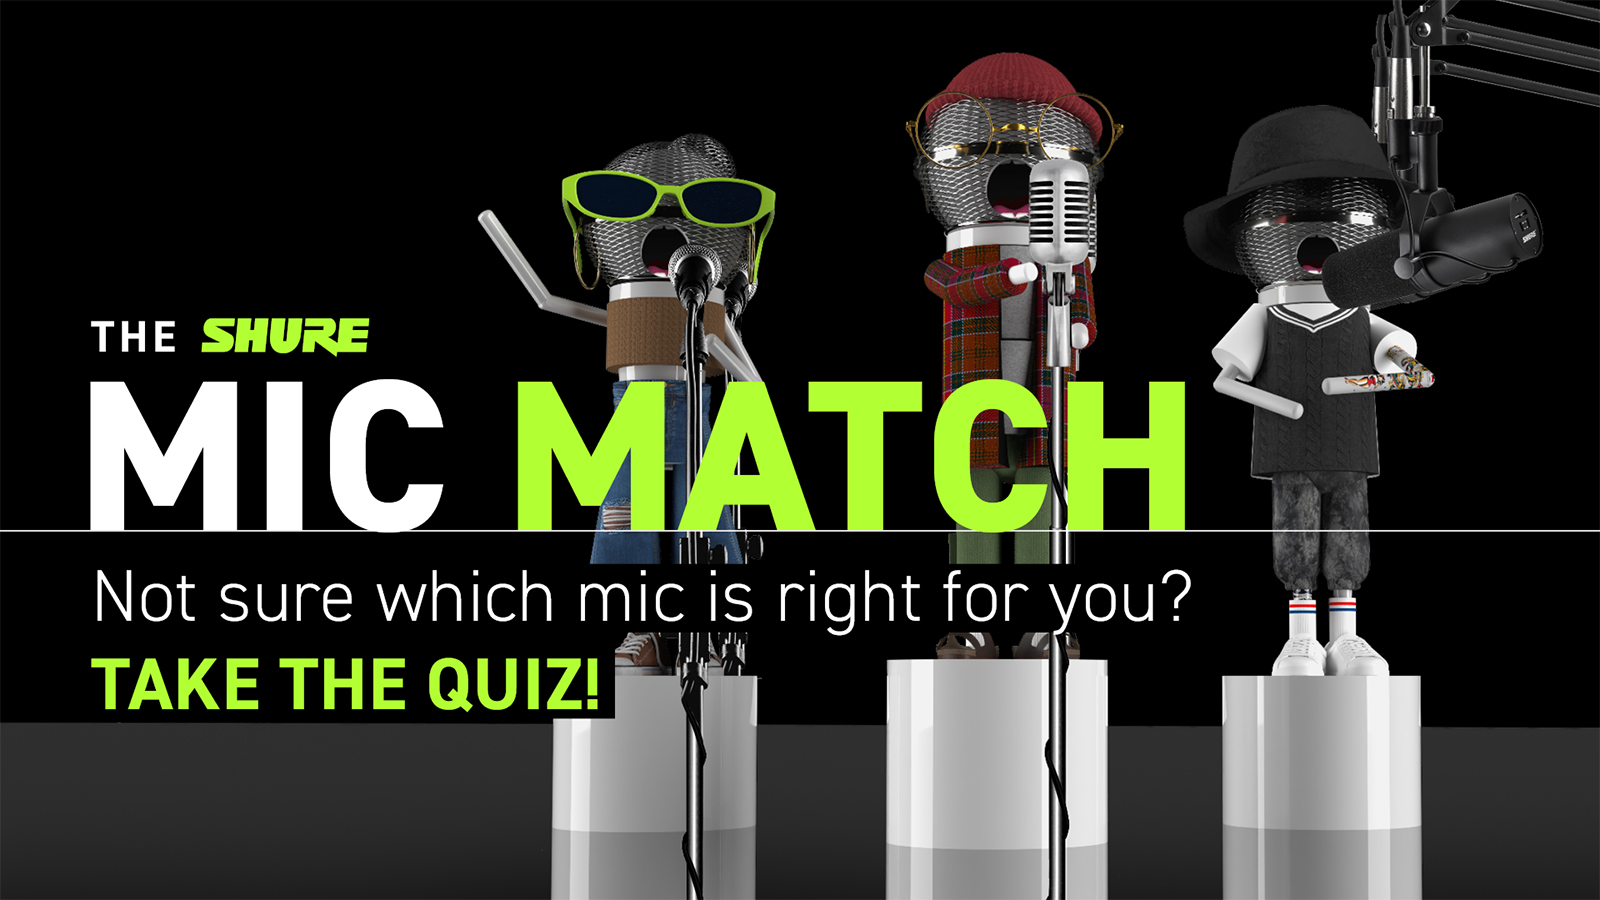 Shure Teams Up With Artists Jacob Collier, Amber Liu, And Others To Help Aspiring Musicians Elevate Their Voices With Mic Match Quiz